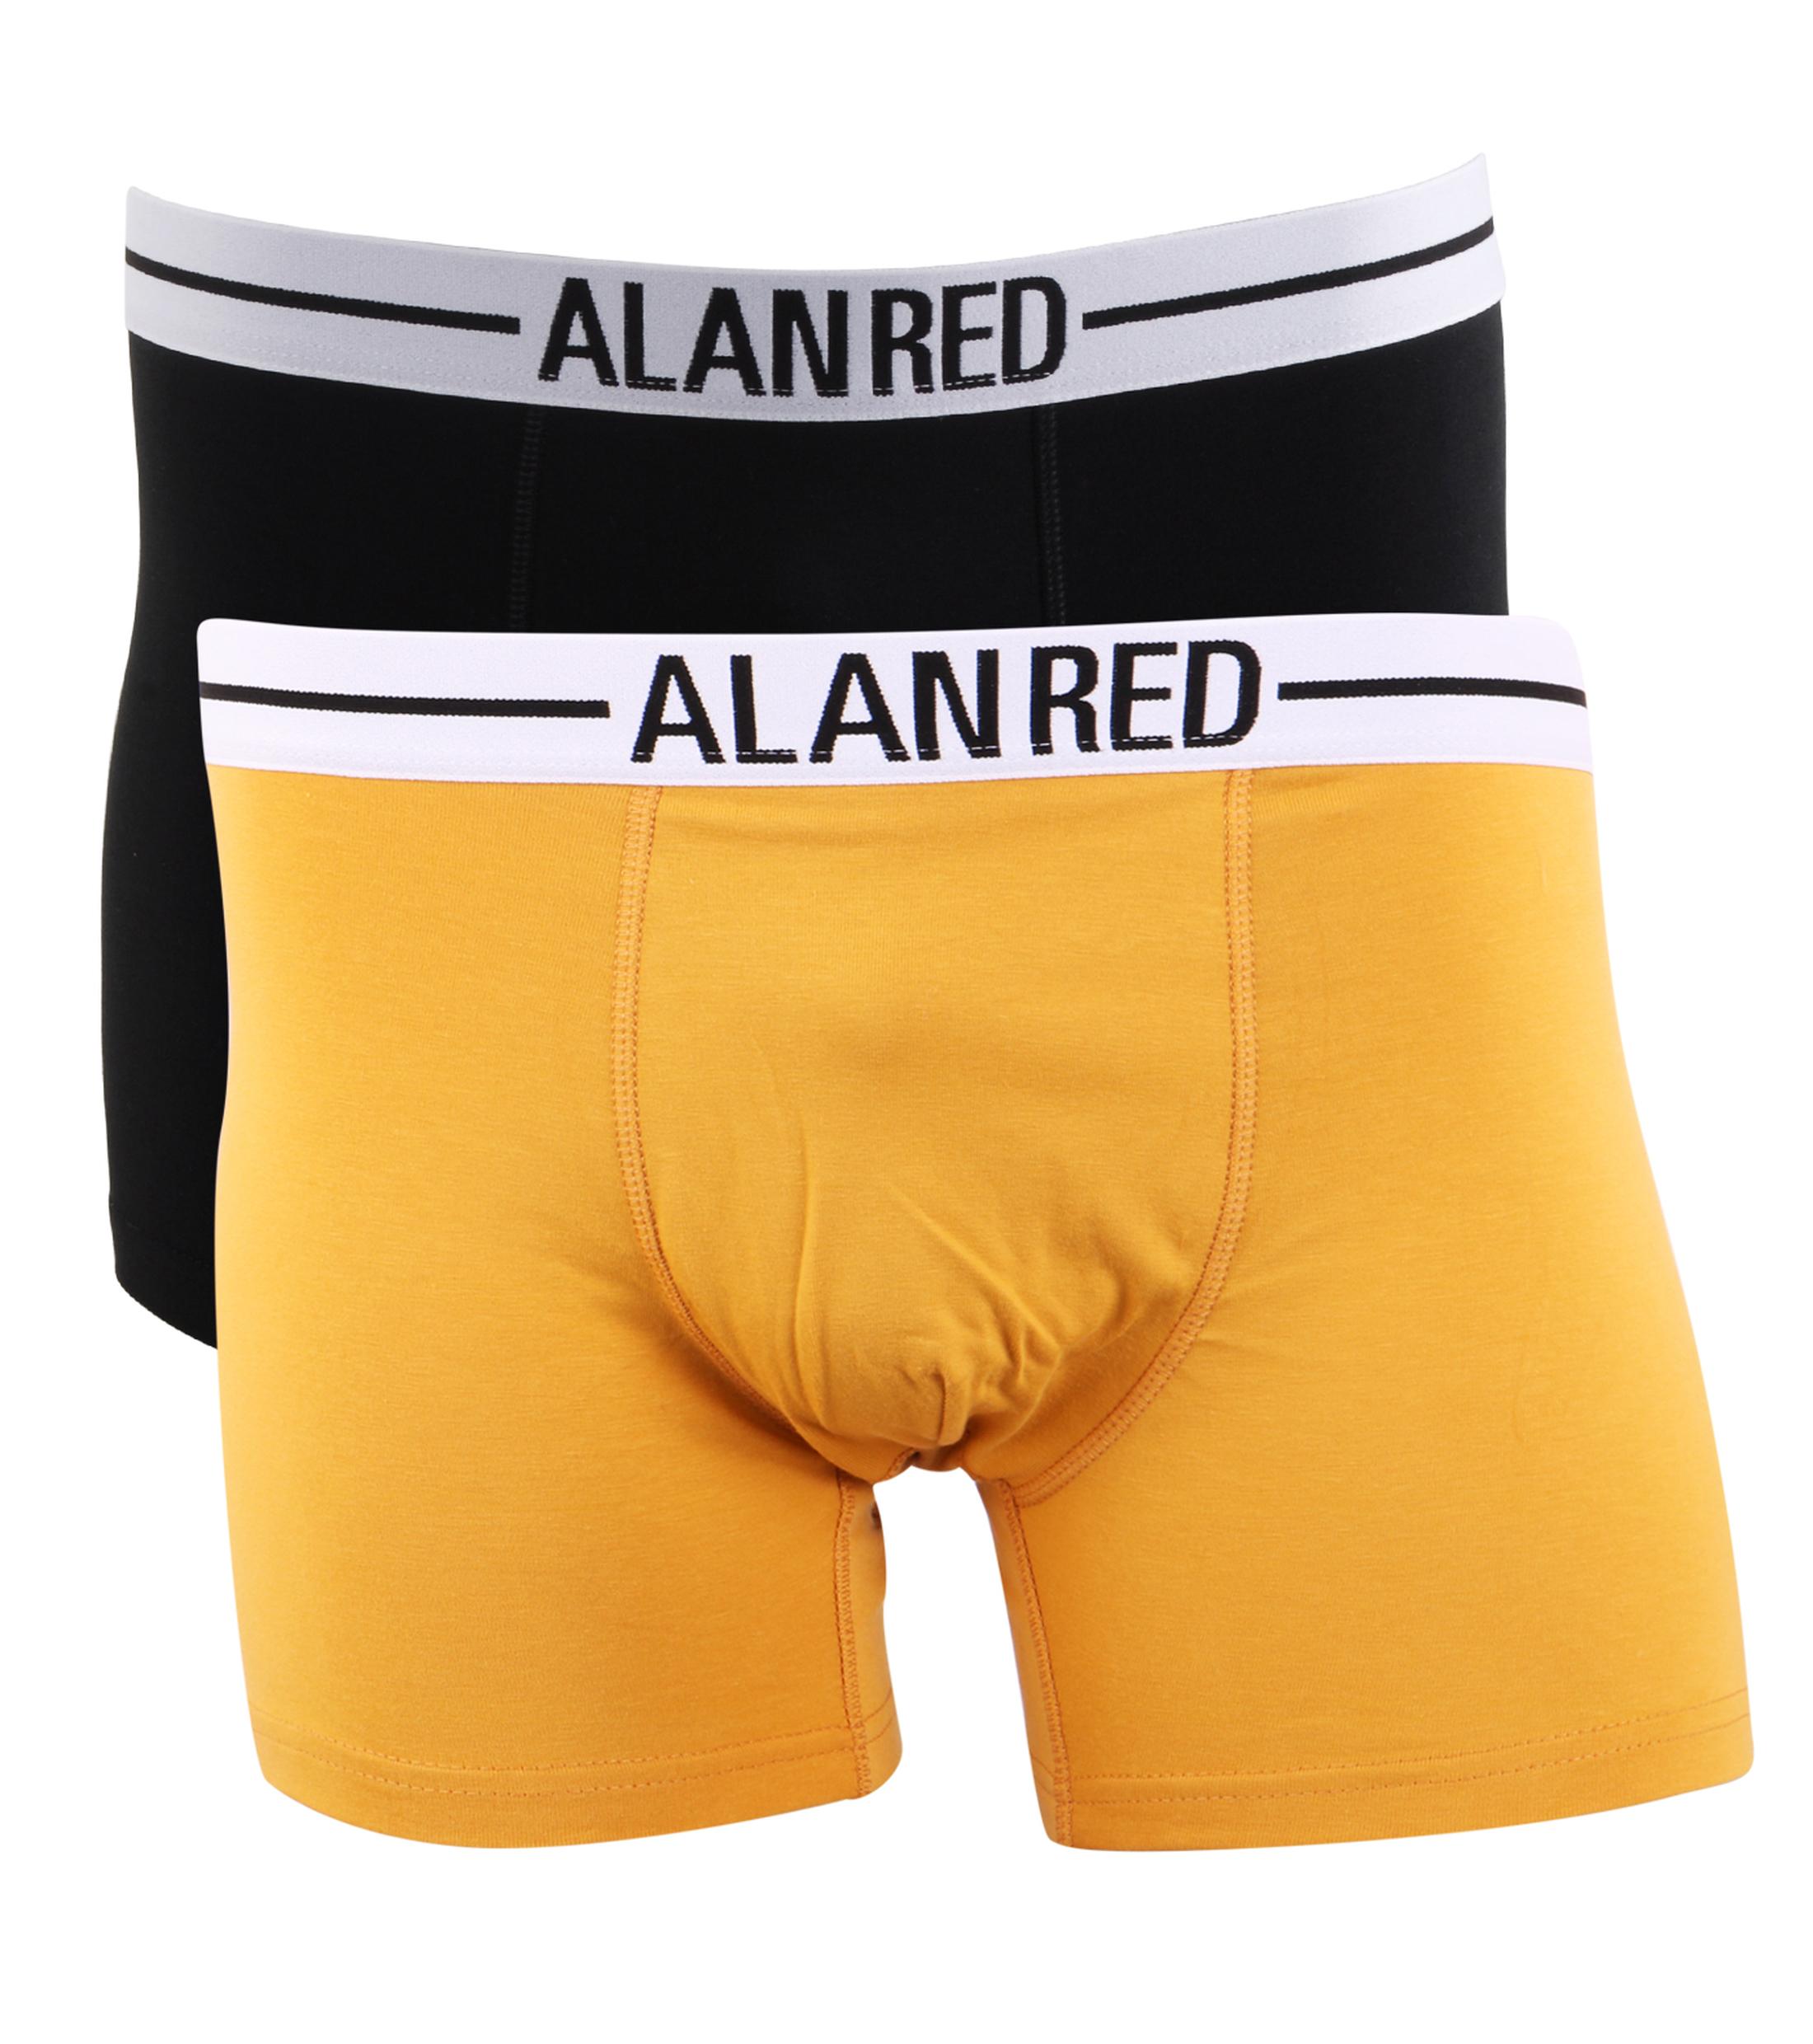 Alan Red Boxershorts Yellow Black foto 0